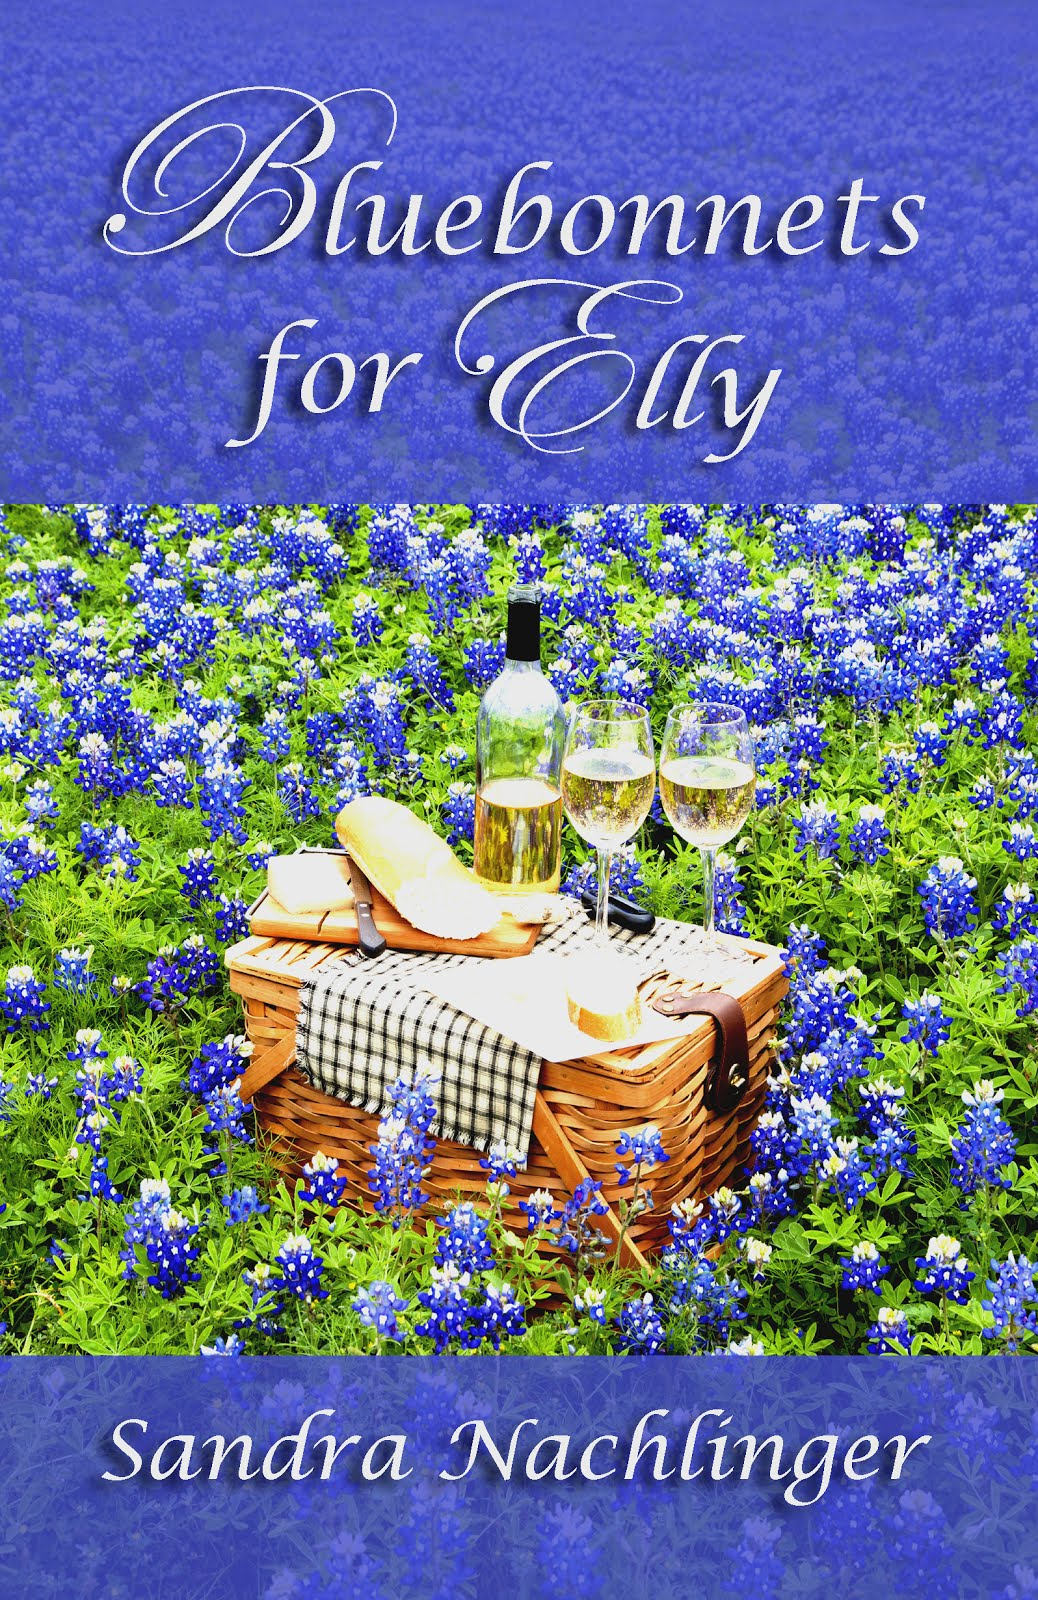 My sweet Texas romance - in paperback and ebook formats